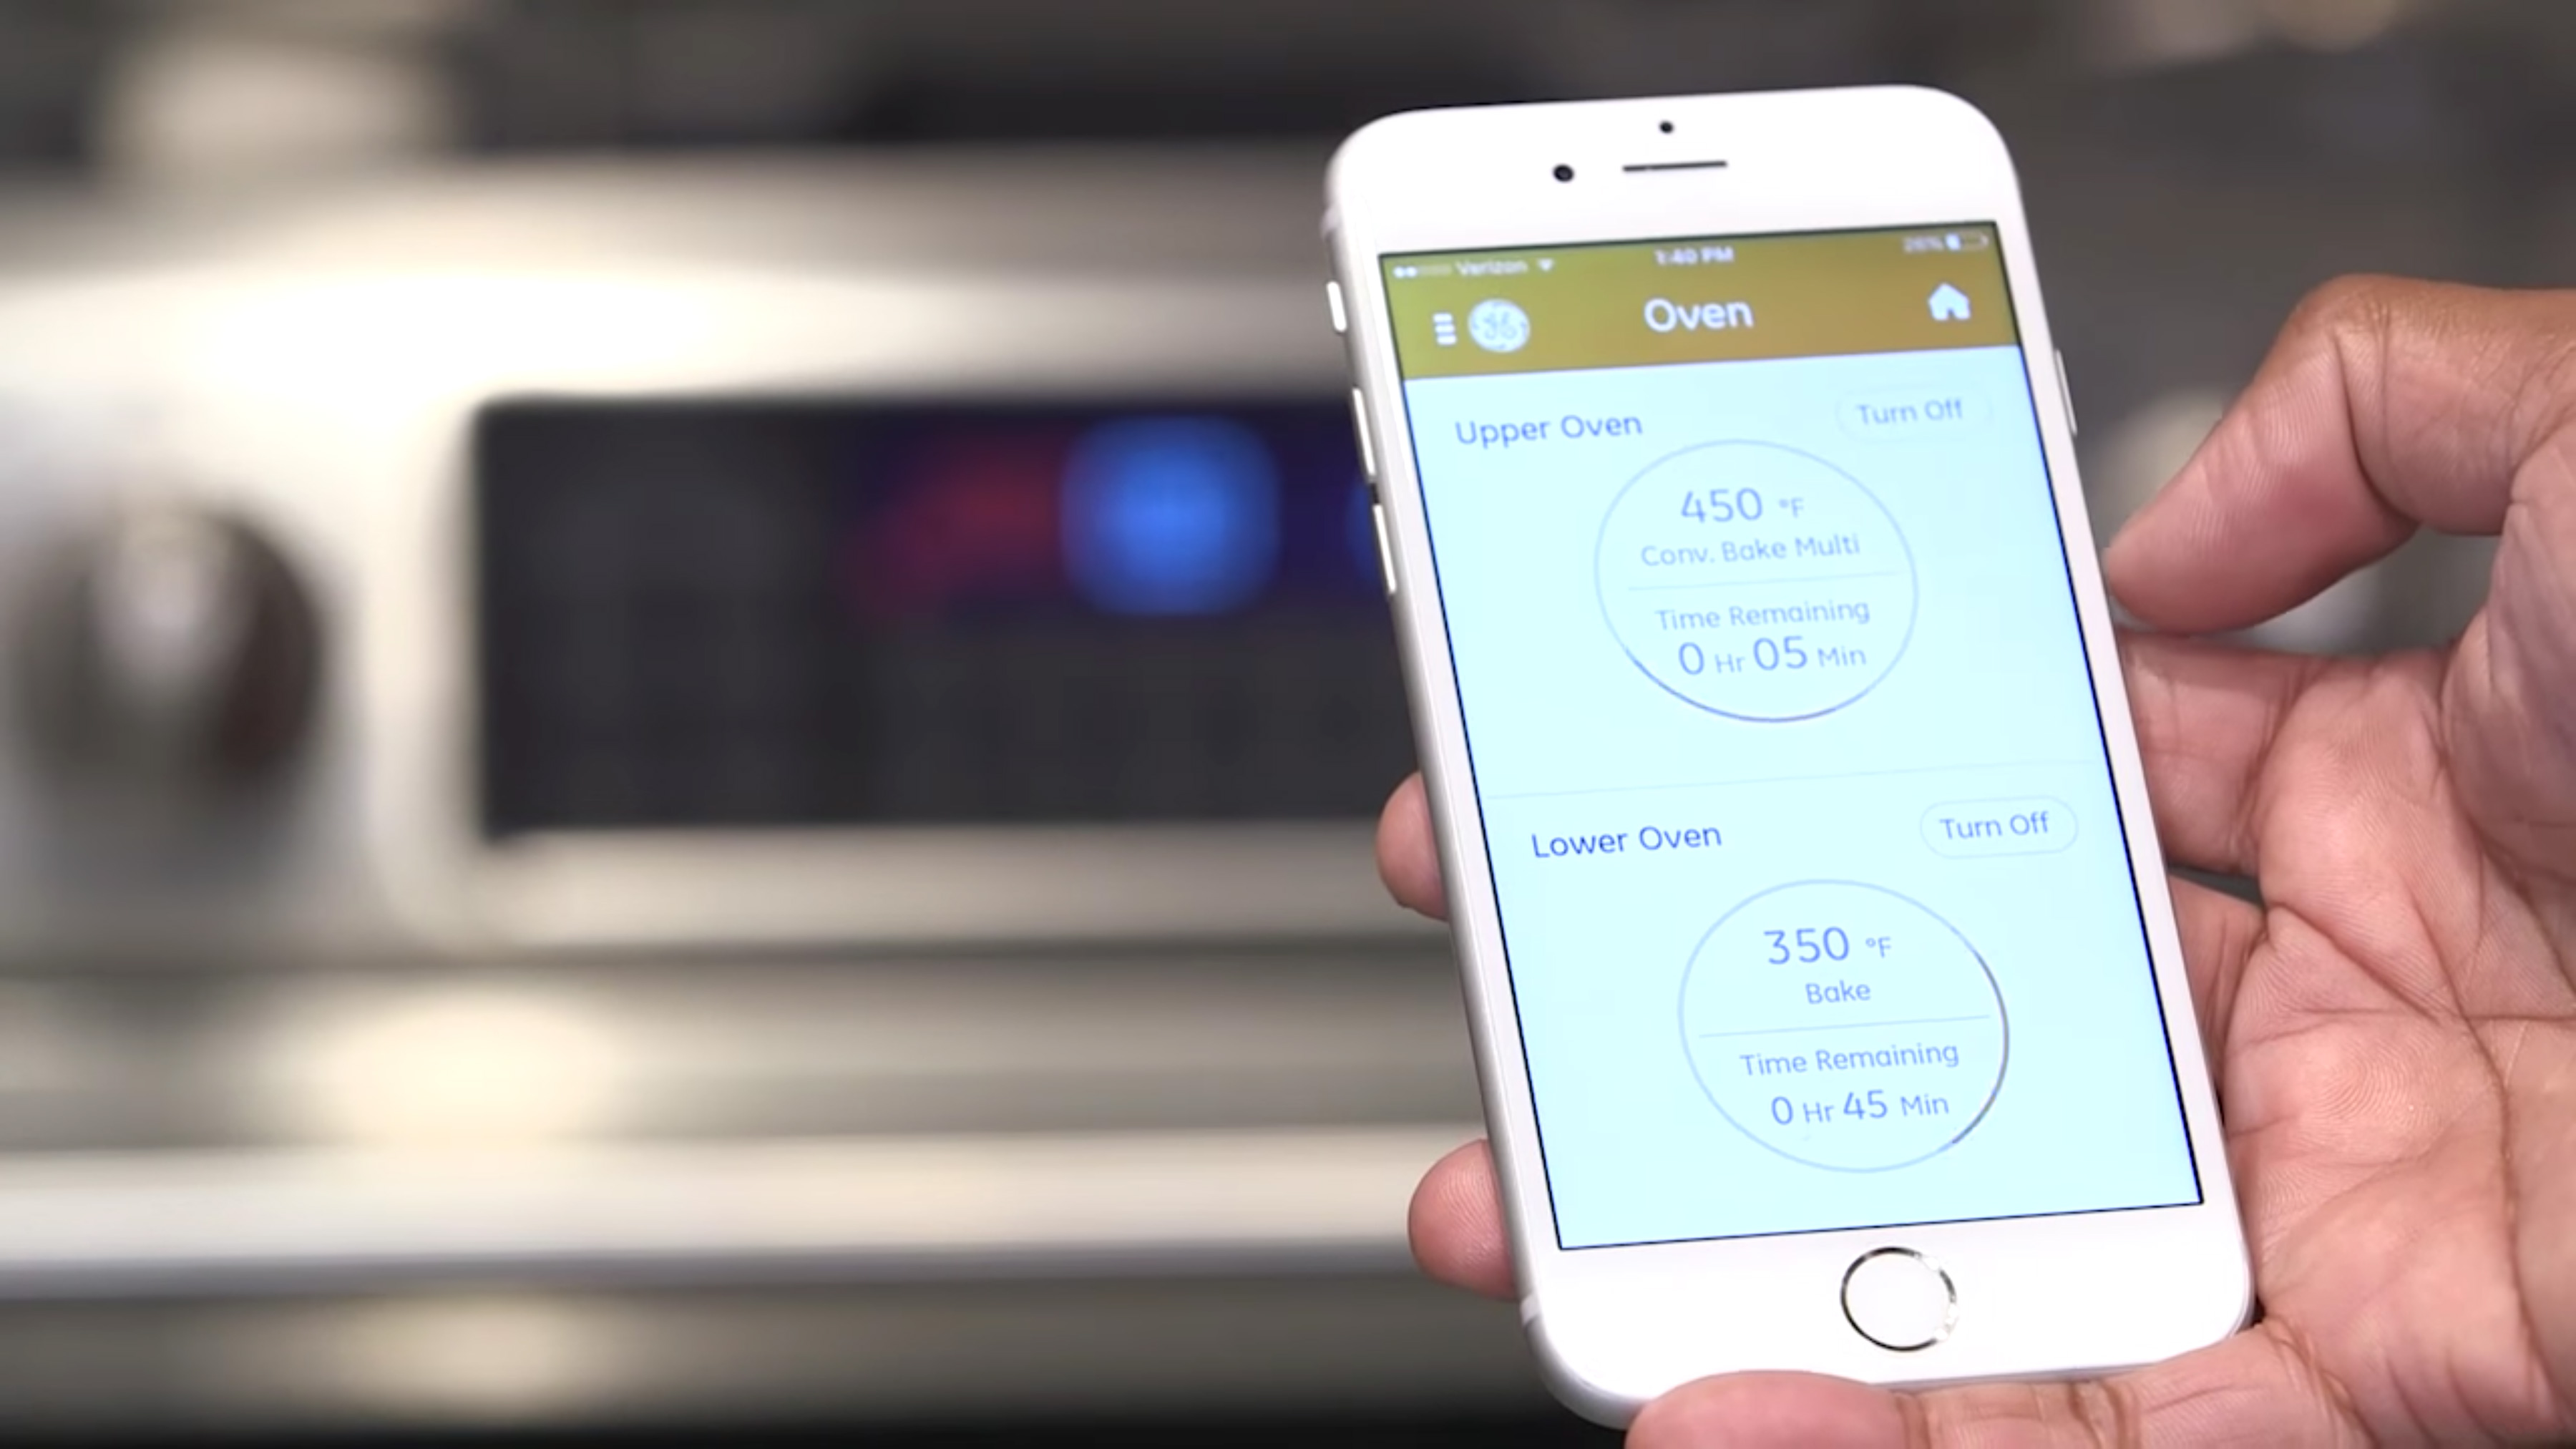 Phone in persons hand with GE Appliances Kitchen App on screen